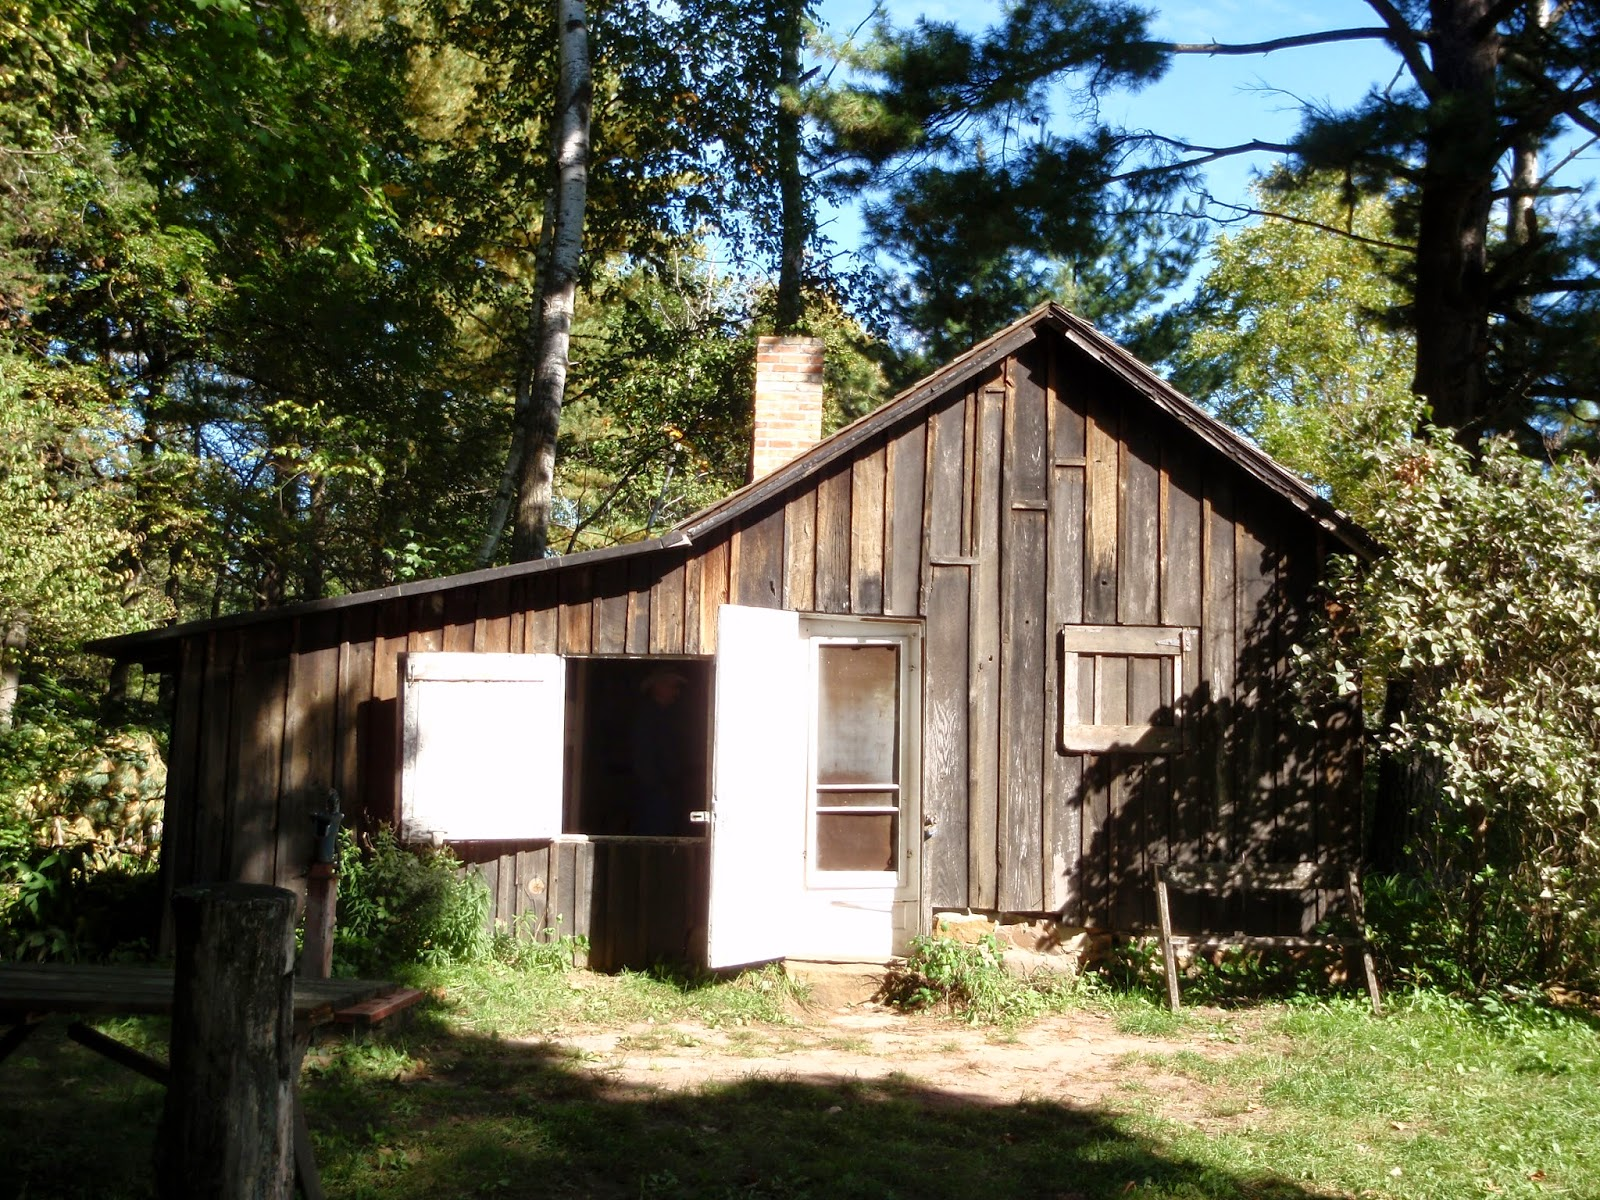 Aldo Leopold Shack at The Aldo Leopold Foundation